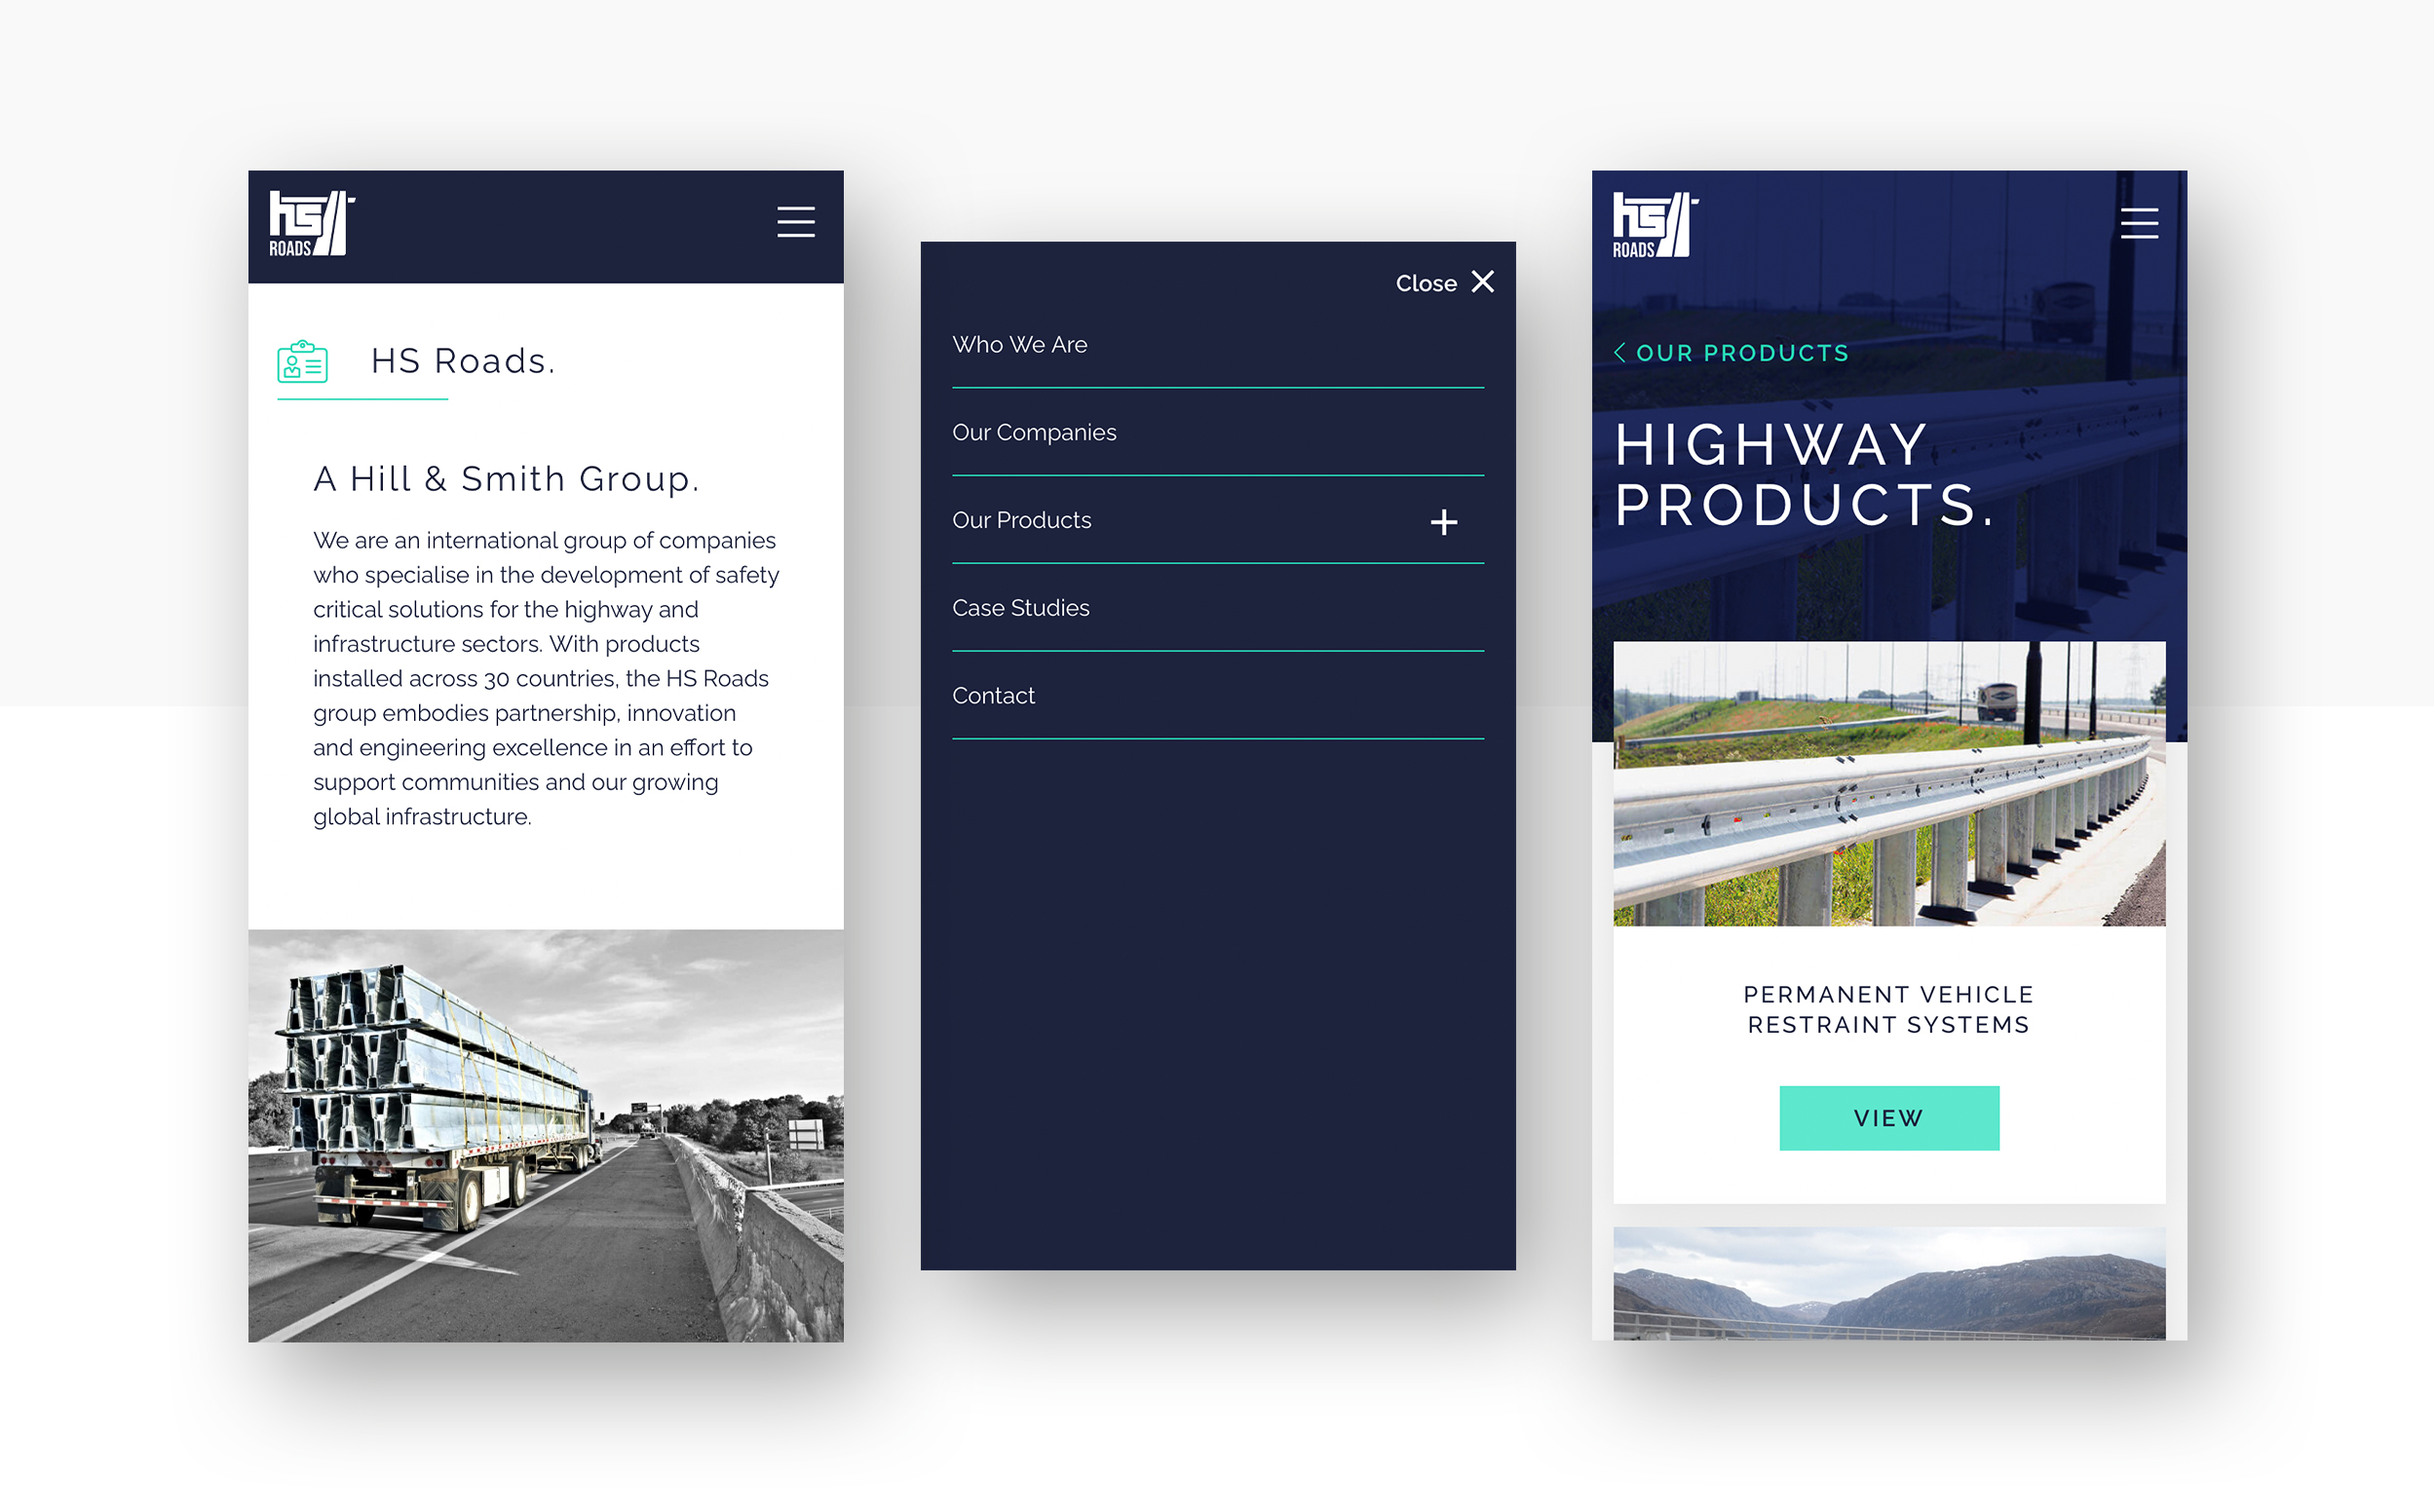 Three mobile phone screen mock ups of the HS Roads website.